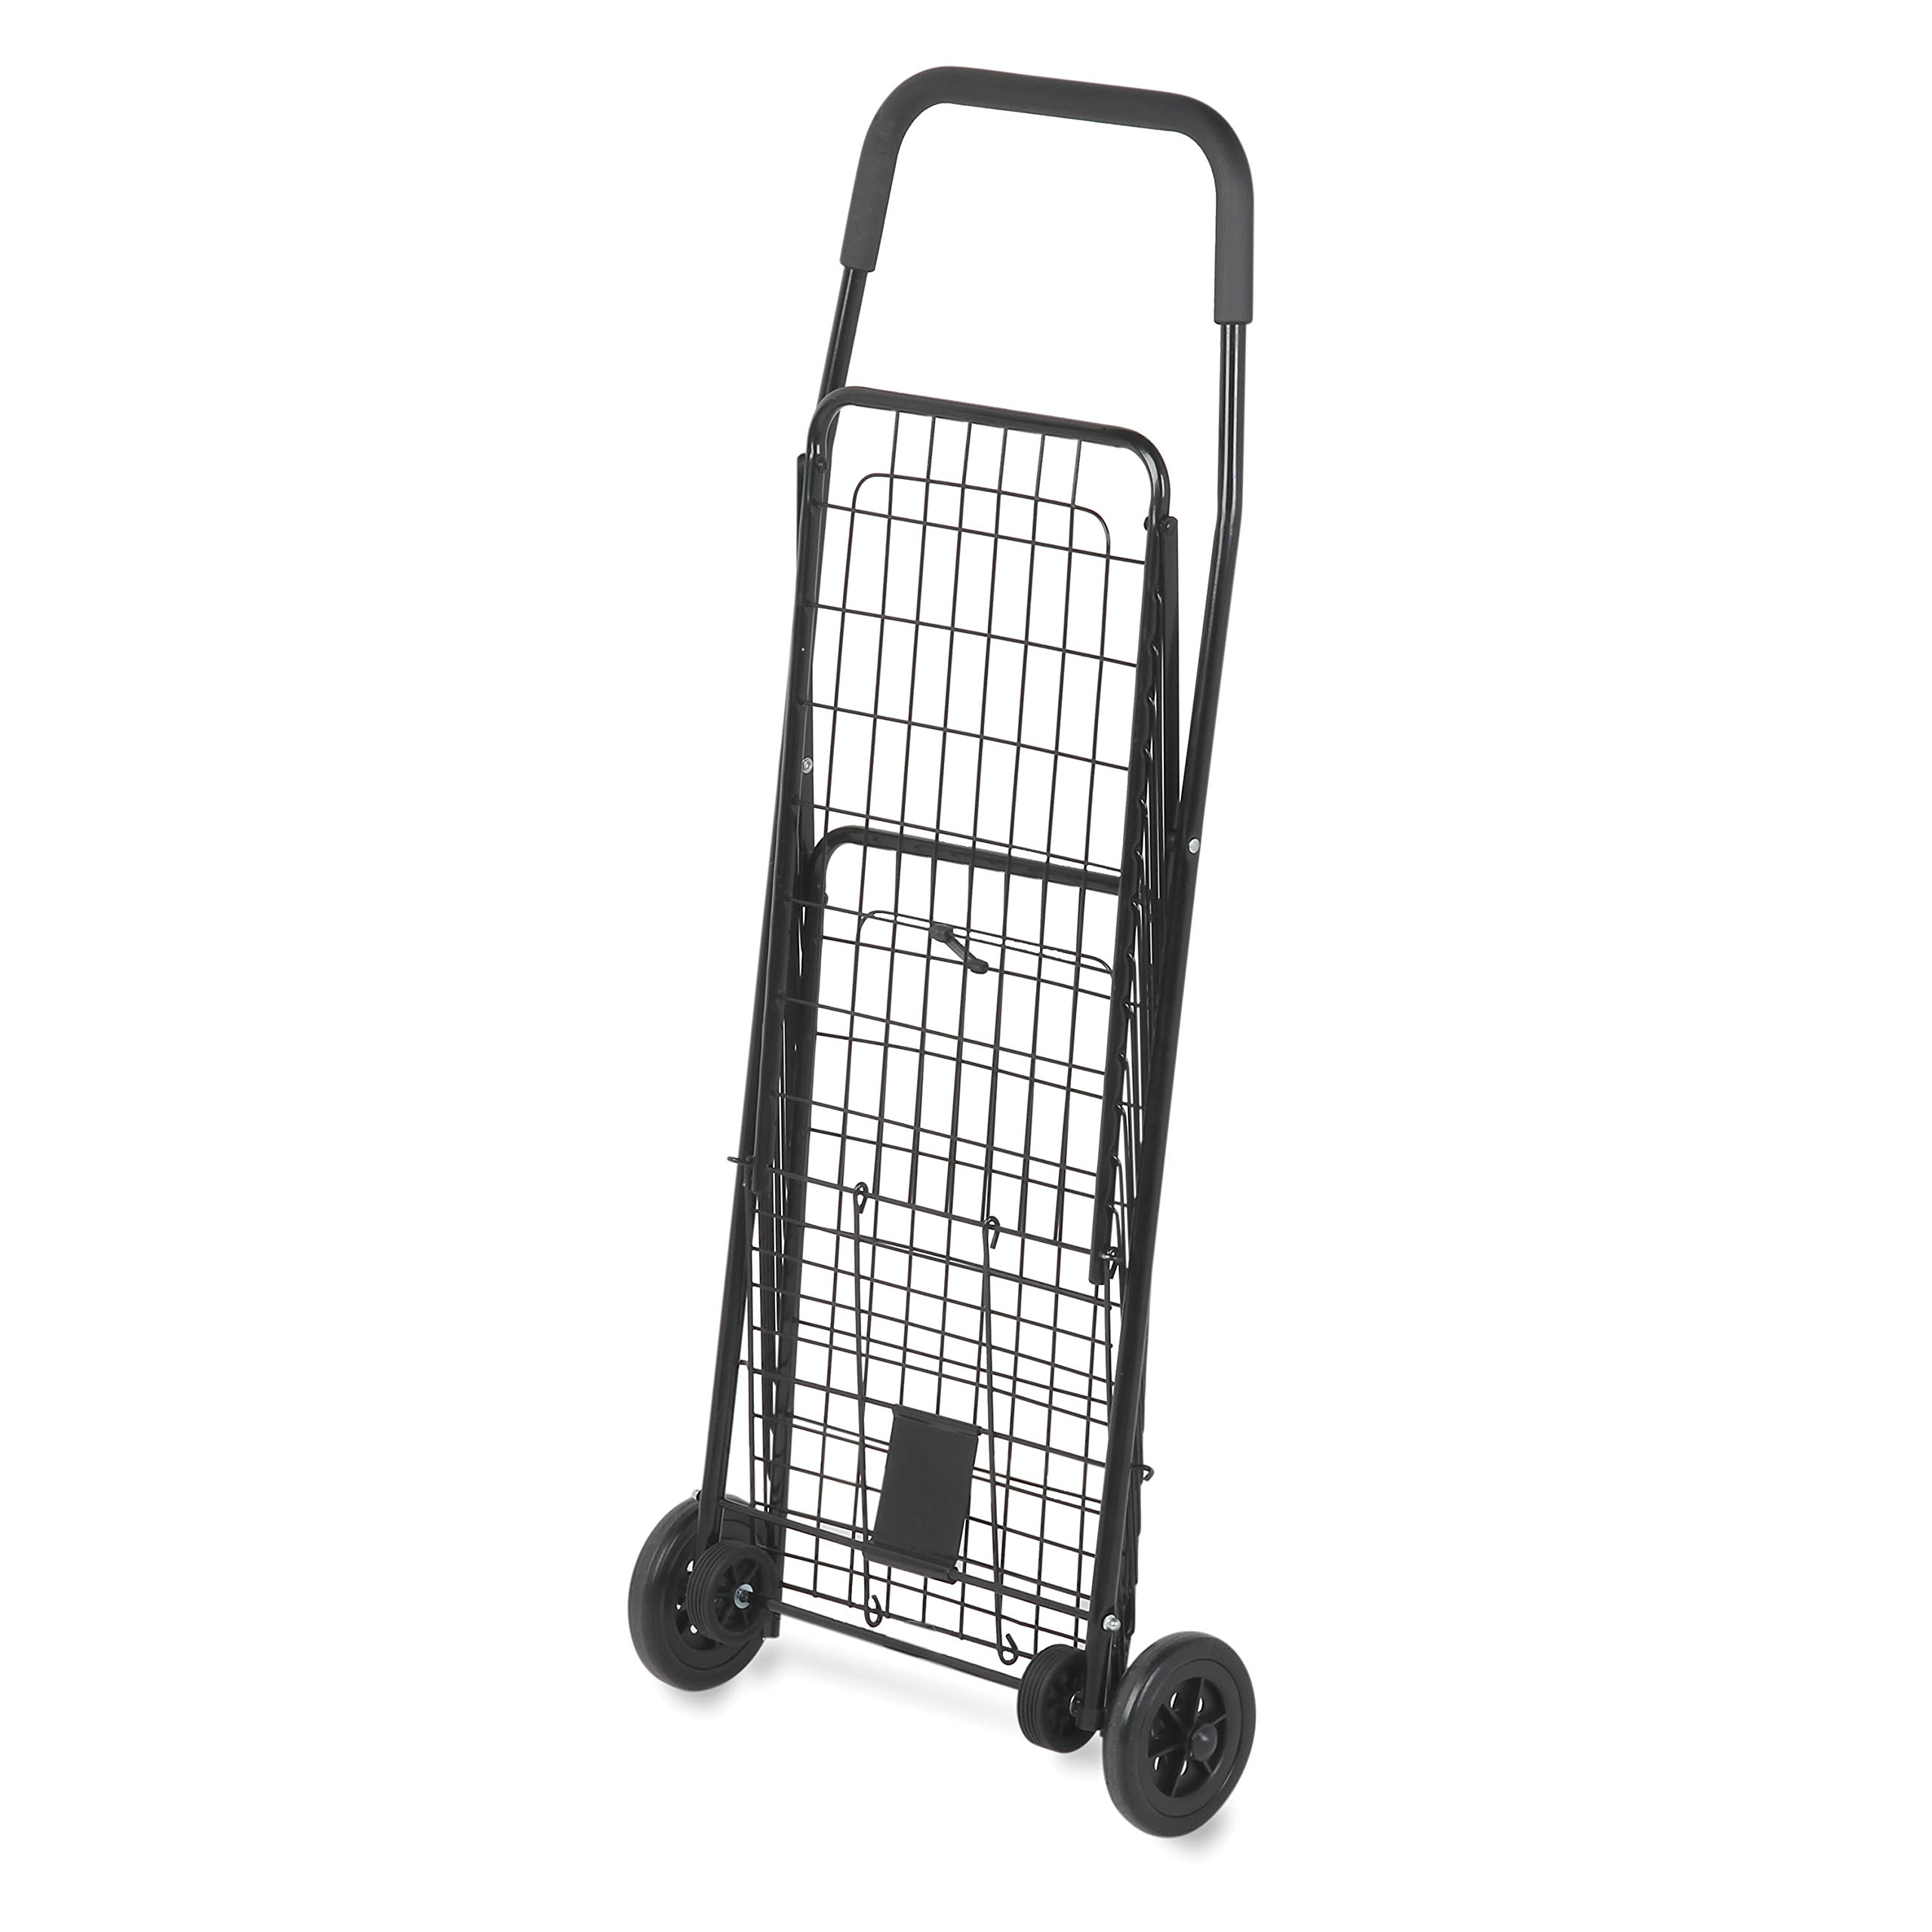 Honey-Can-Do RA49035 CRT-01511 4-Wheel Utility Cart, Medium, Multicolor by Honey-Can-Do